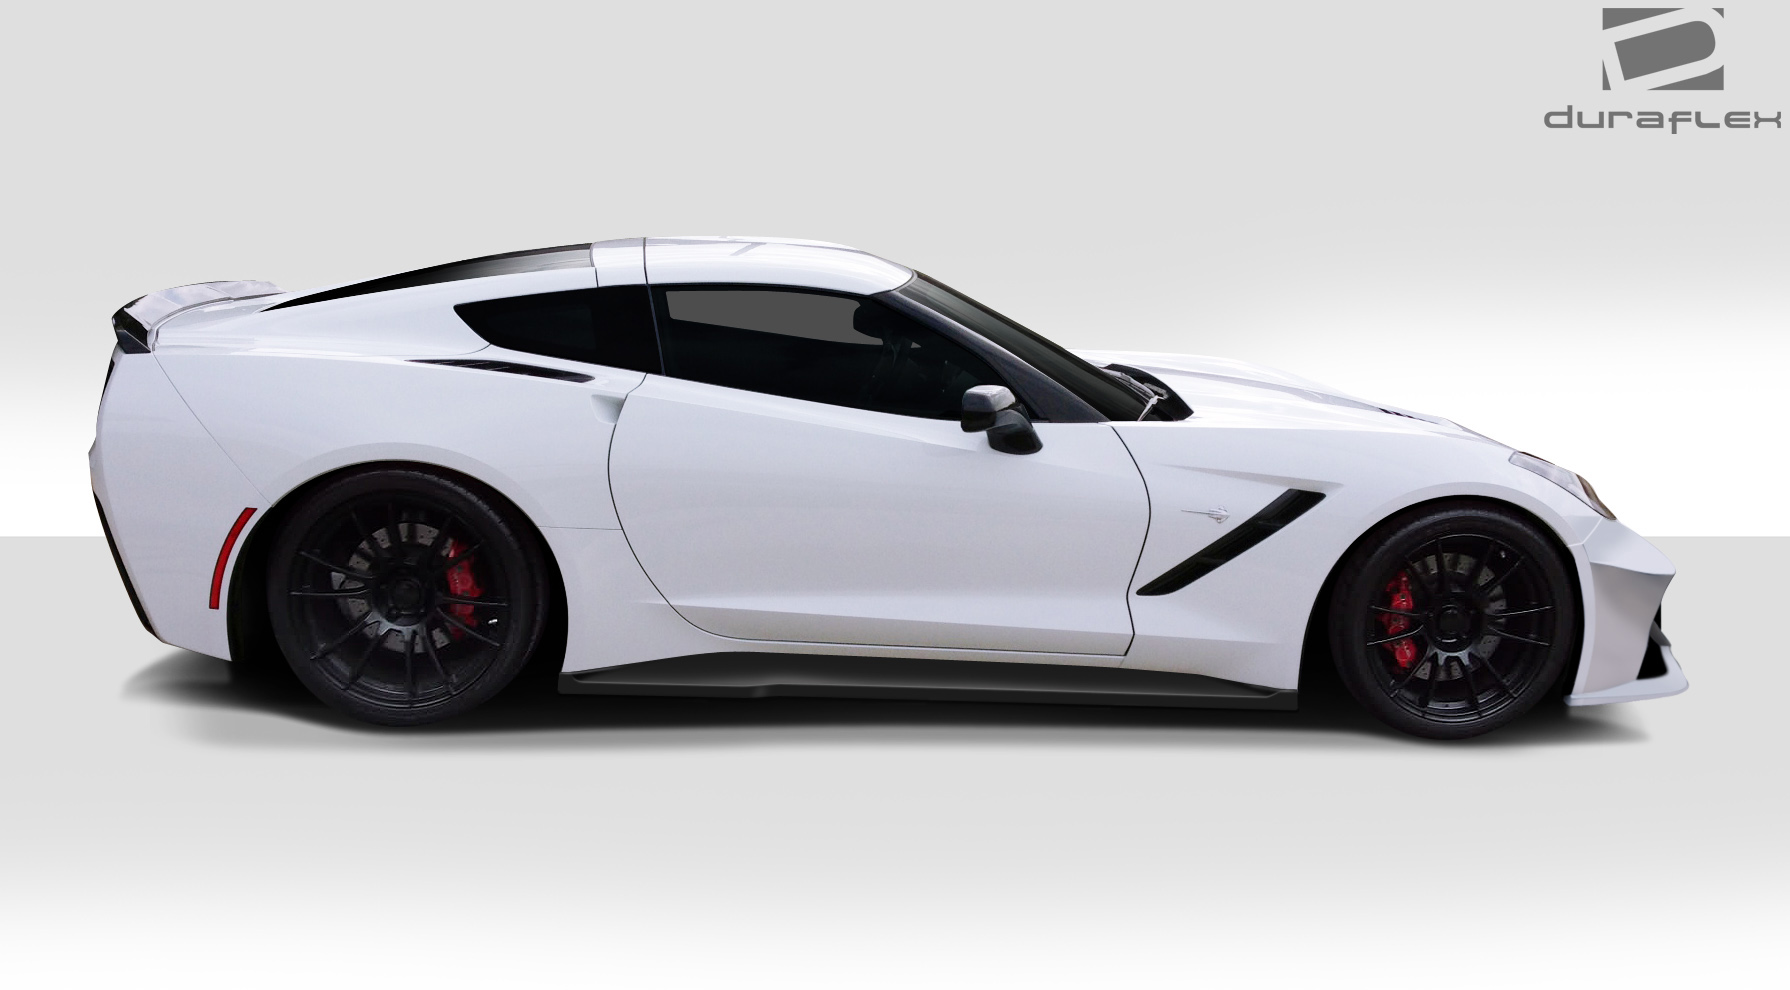 1961 Corvette For Sale >> Welcome to Extreme Dimensions :: Item Group :: 2014-2018 Chevrolet Corvette C7 Duraflex Gran ...